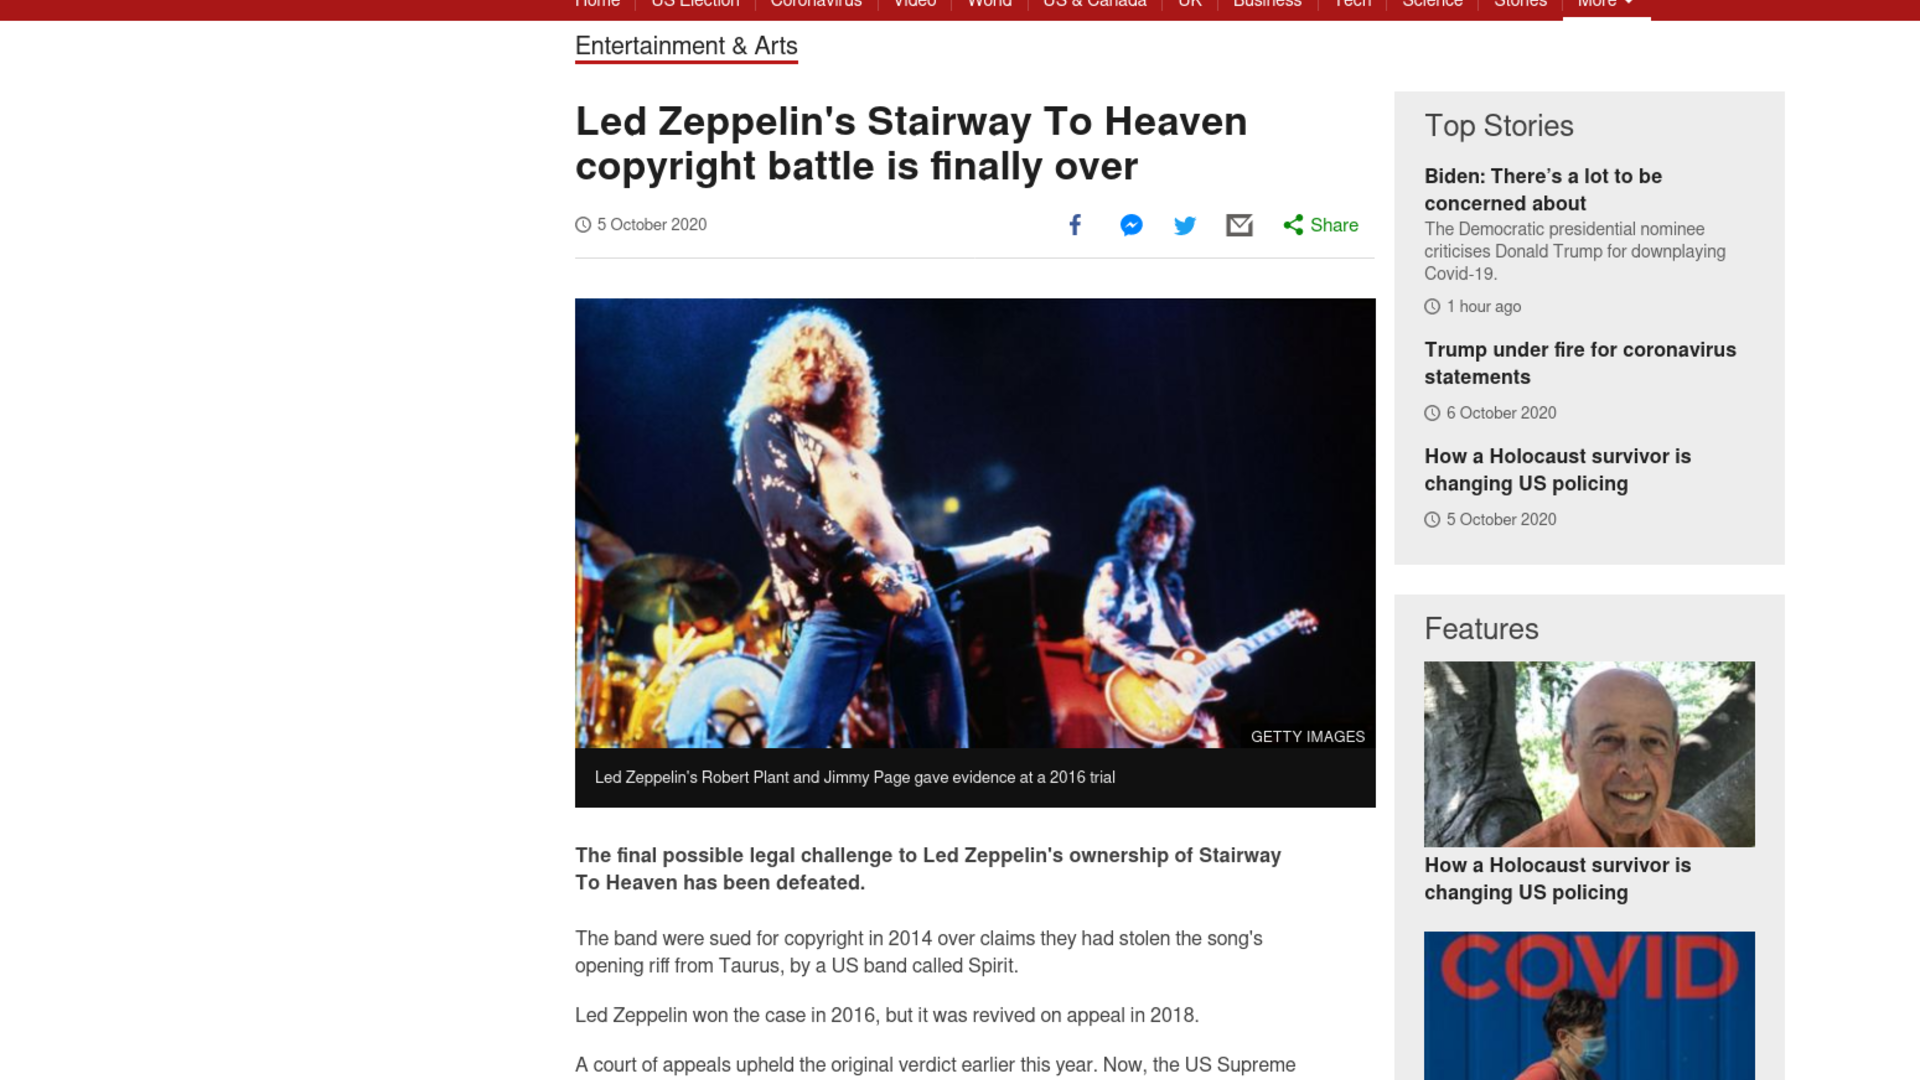 Fairness Rocks News Led Zeppelin's Stairway To Heaven copyright battle is finally over